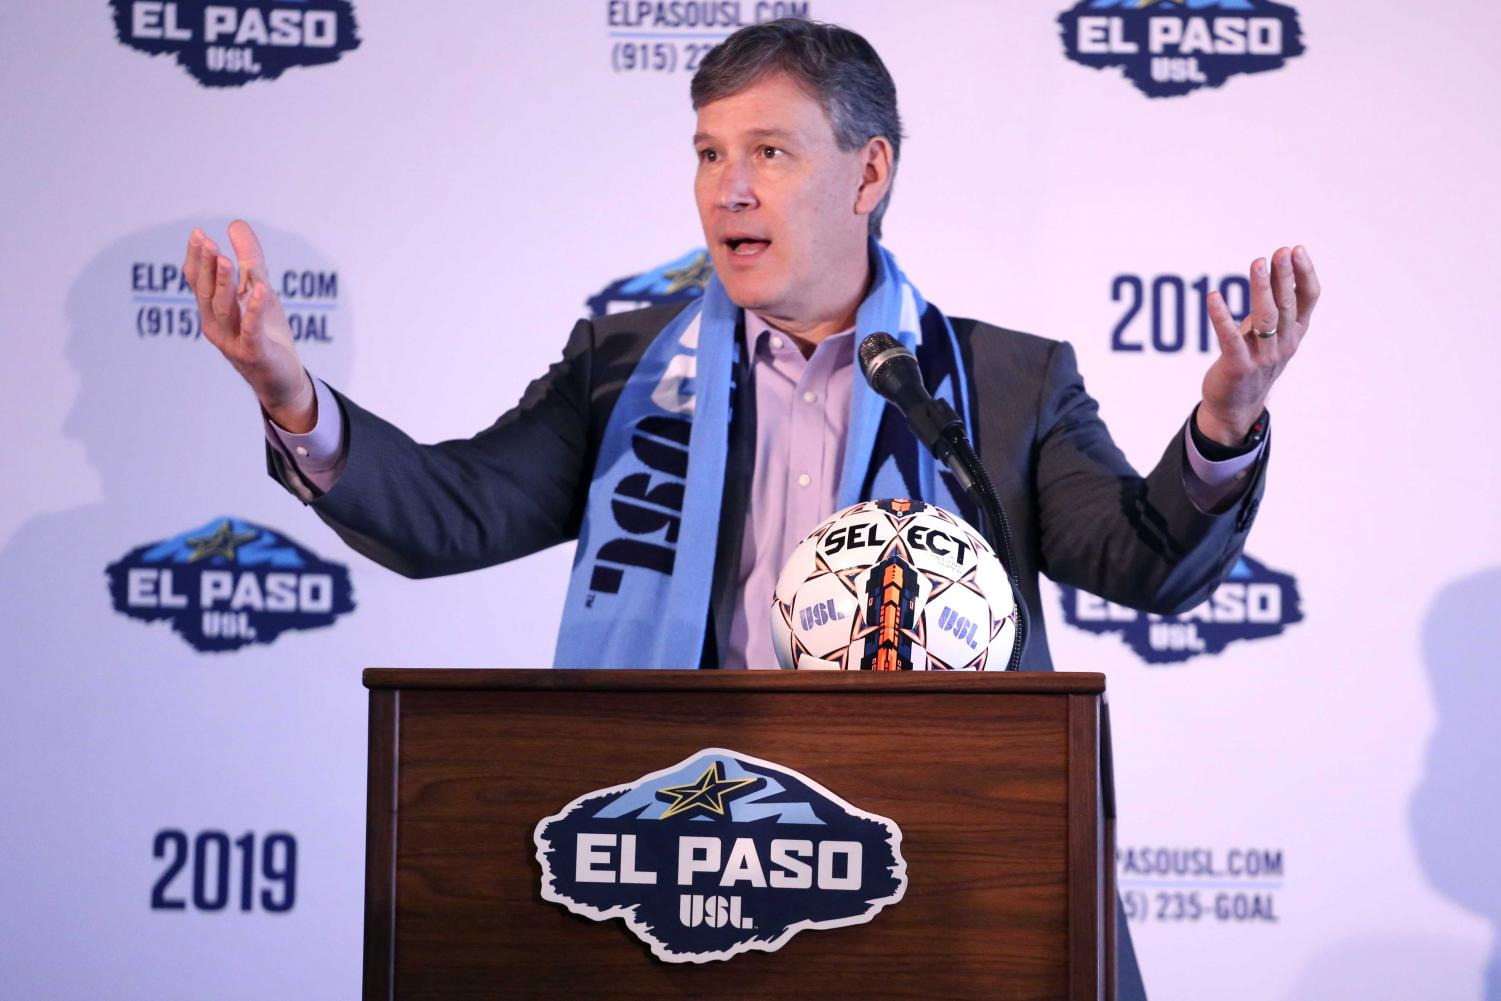 USL+President+Alan+Ledford+announces+that+Mark+Lowry+will+be+the+Head+Coach+and+Technical+Director+for+the+team+